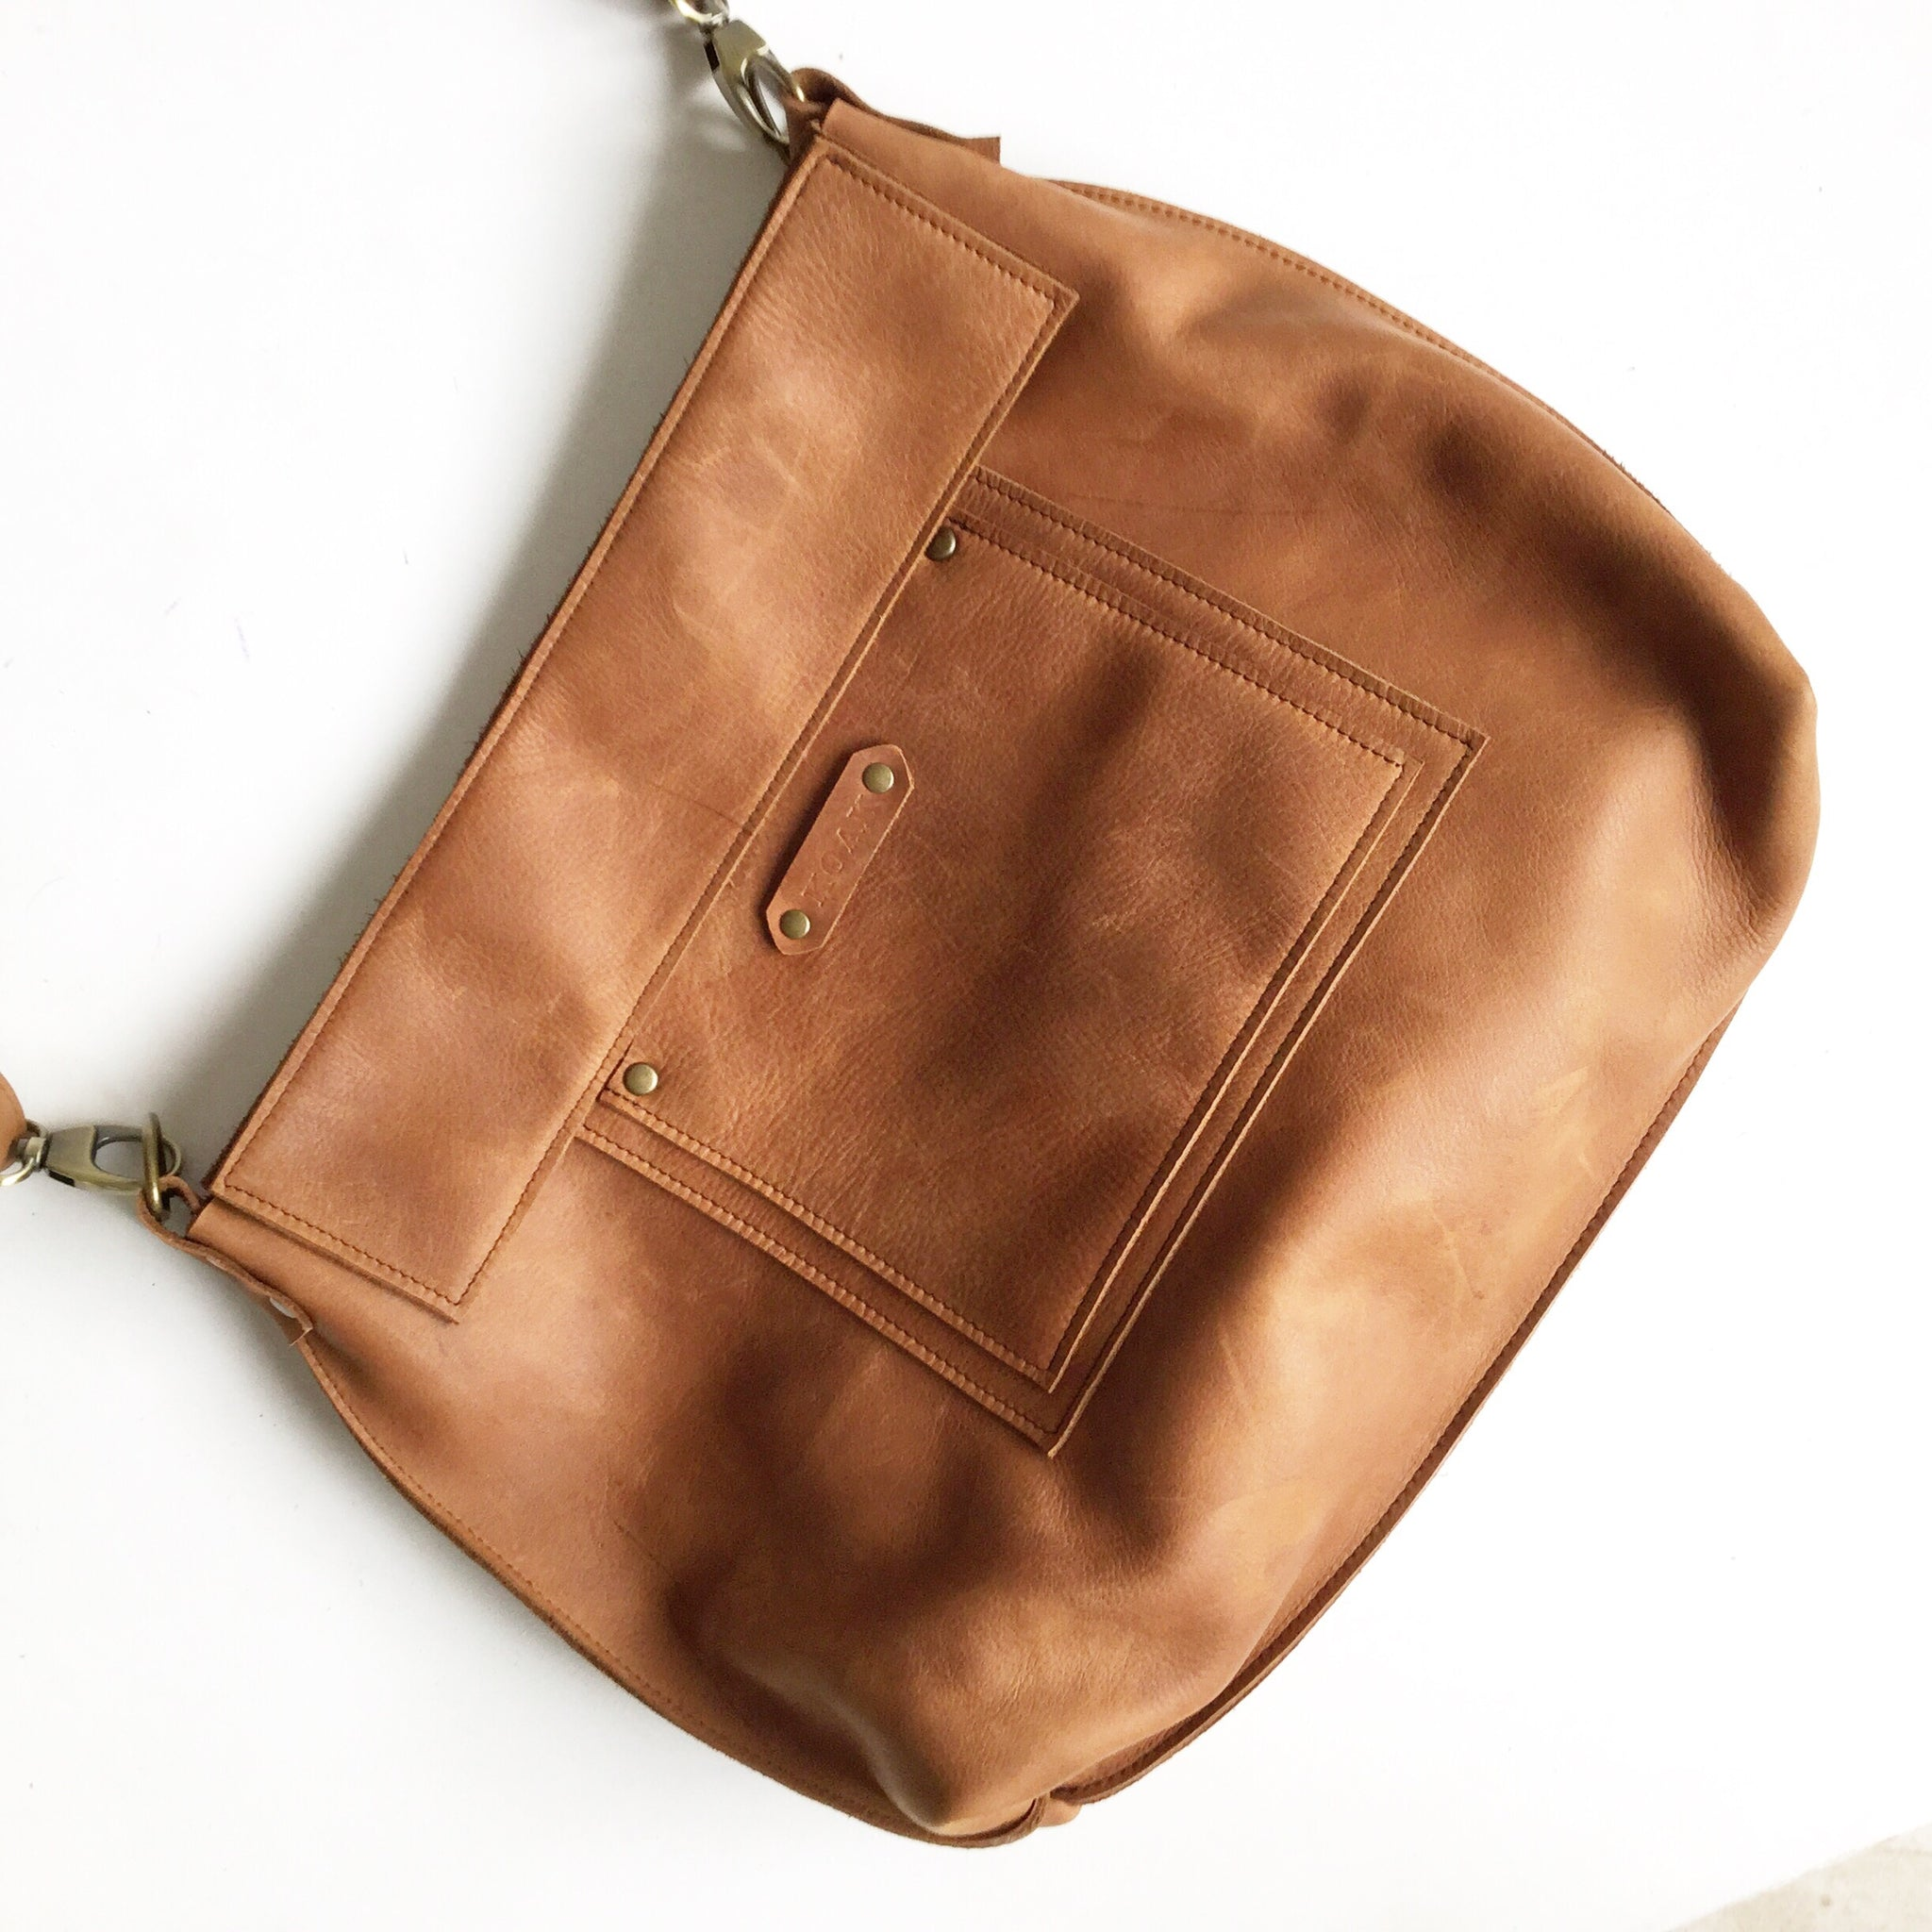 The Epic Slouch Messenger Bag